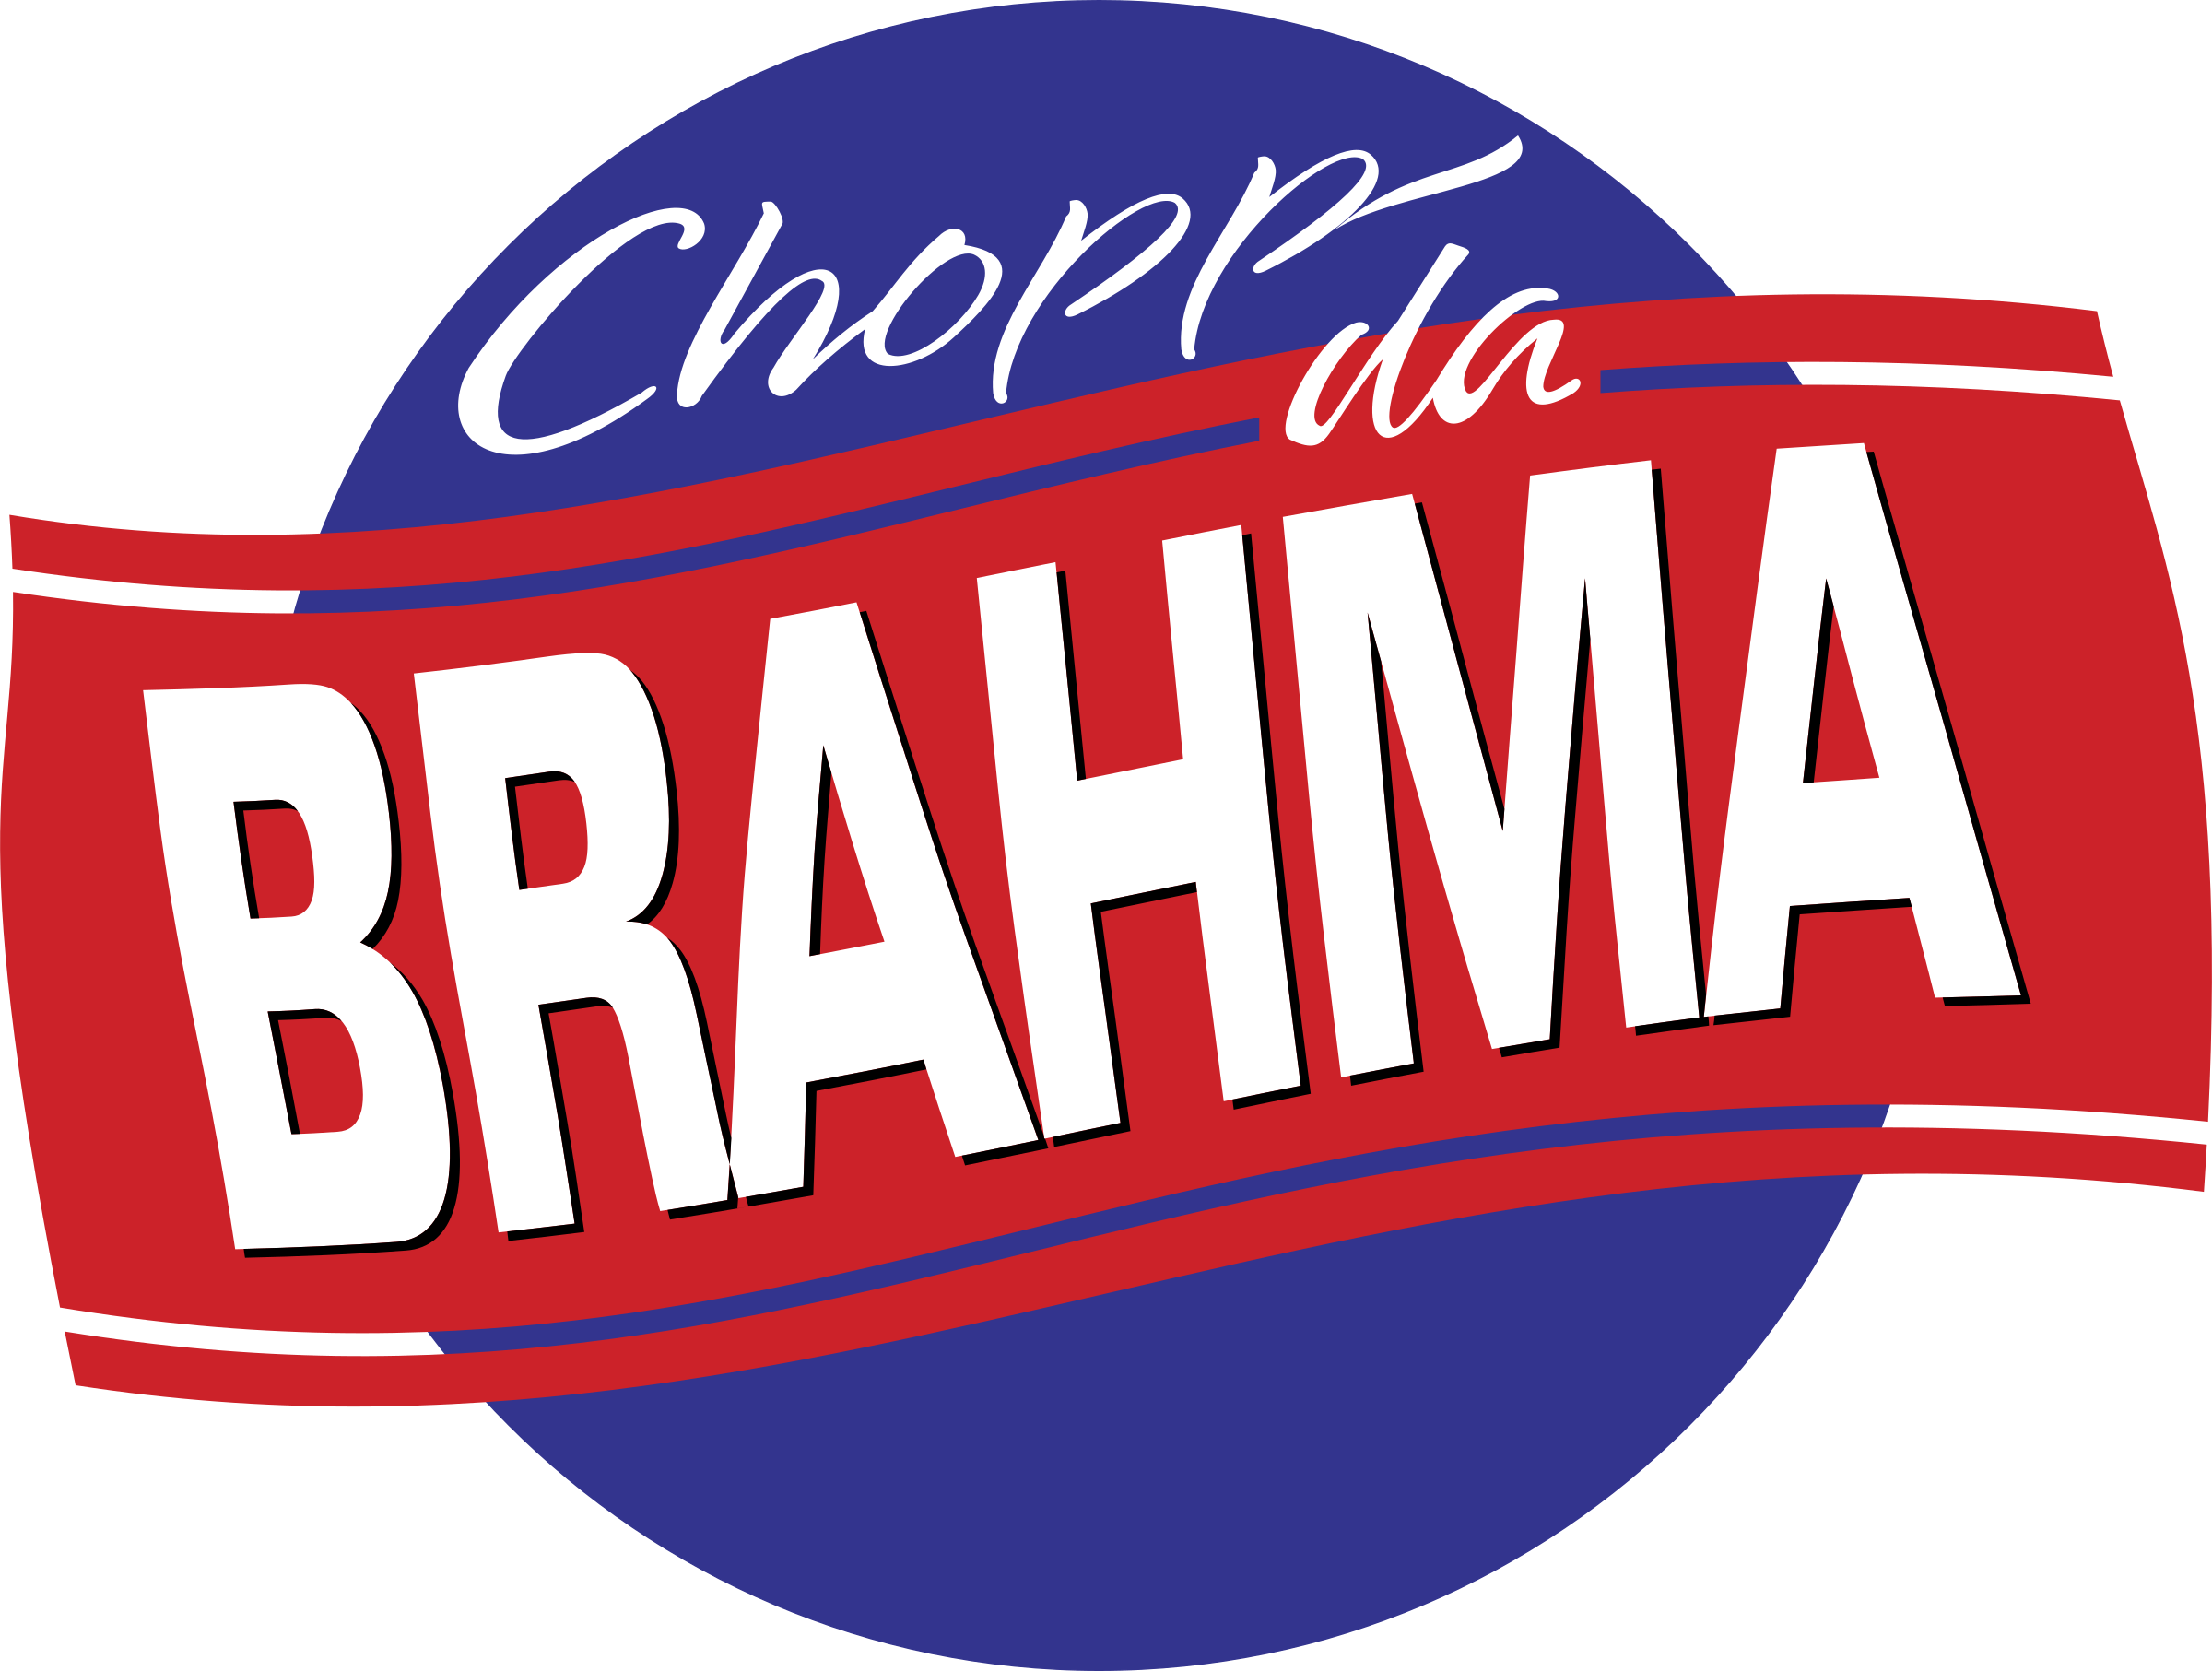 brahma copo Logo PNG Transparent & SVG Vector.